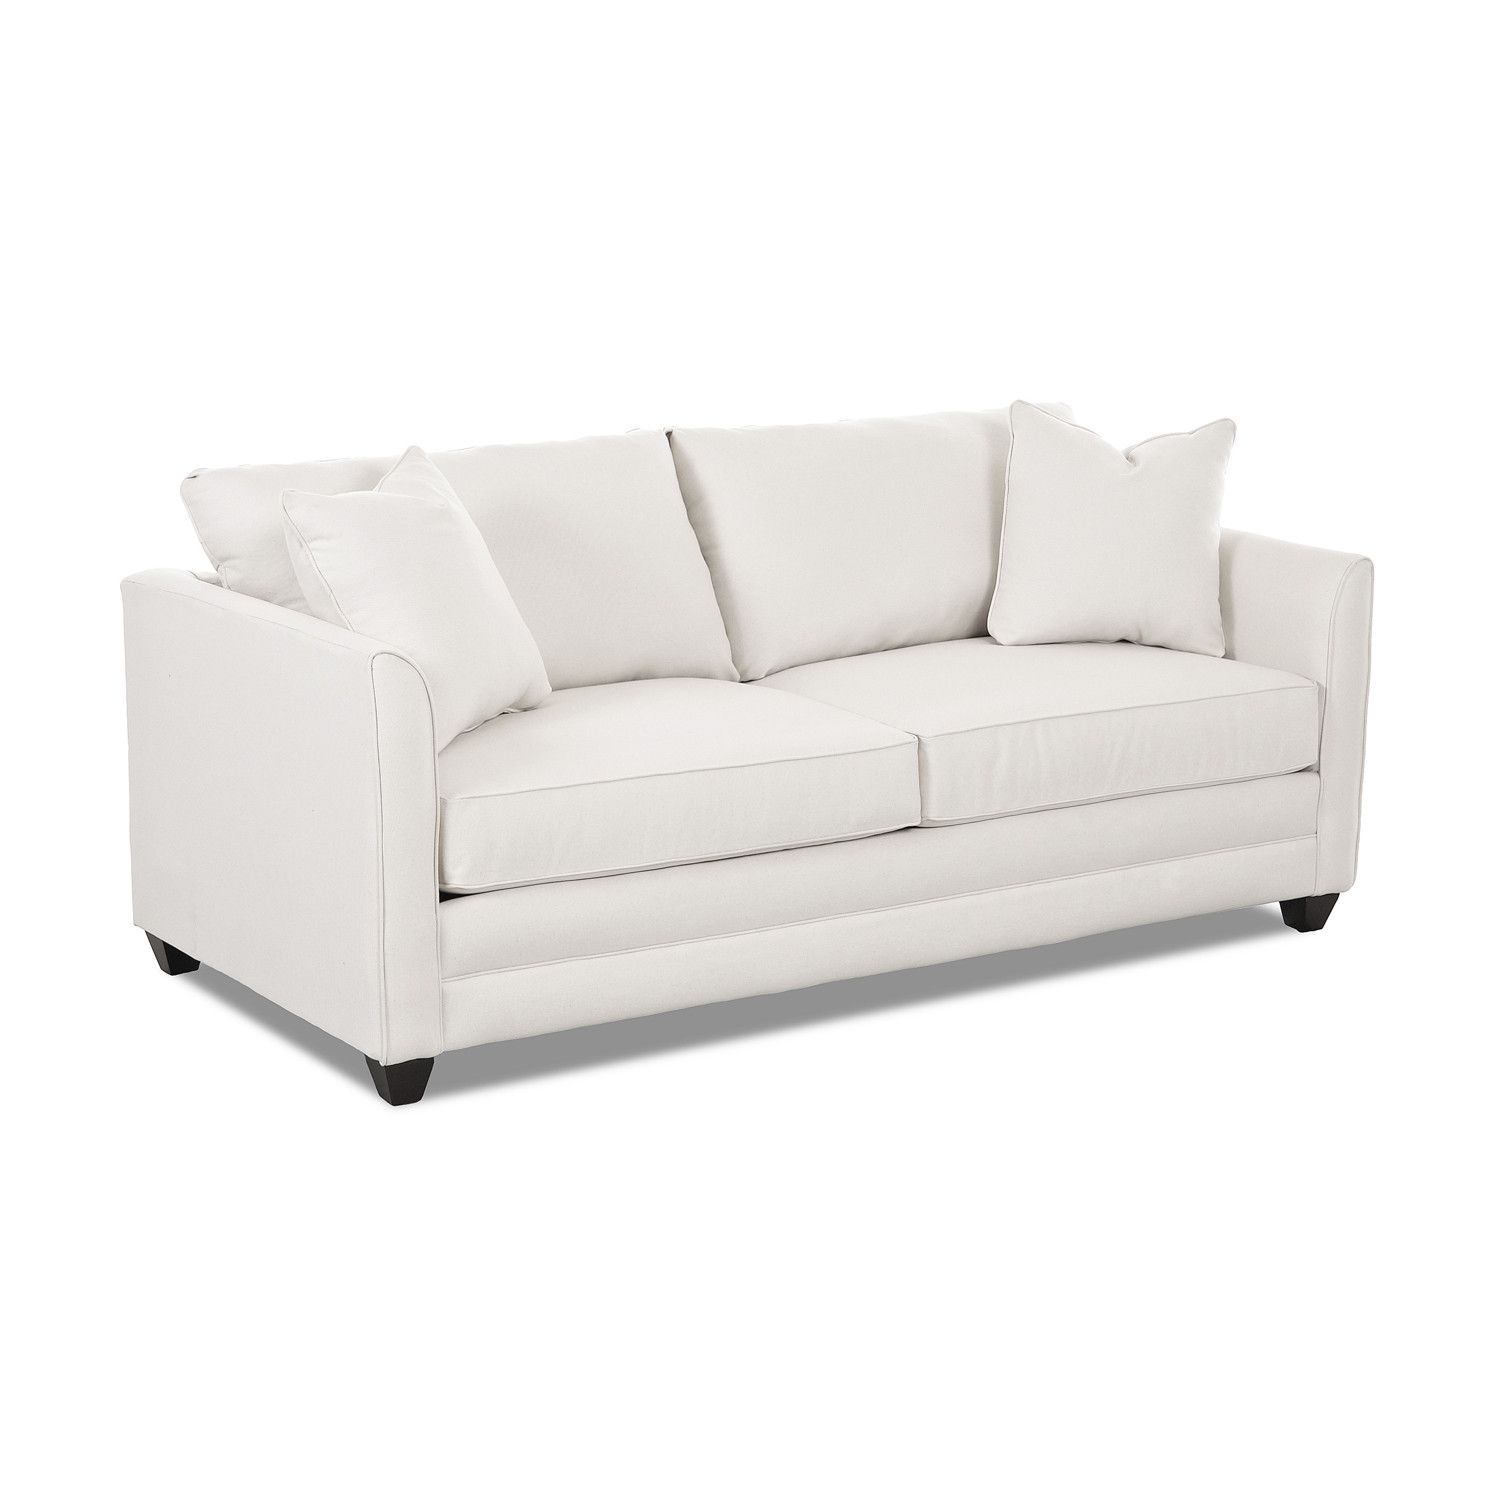 com sofa wayfair leather aifaresidency sleeper of brilliant sofas for